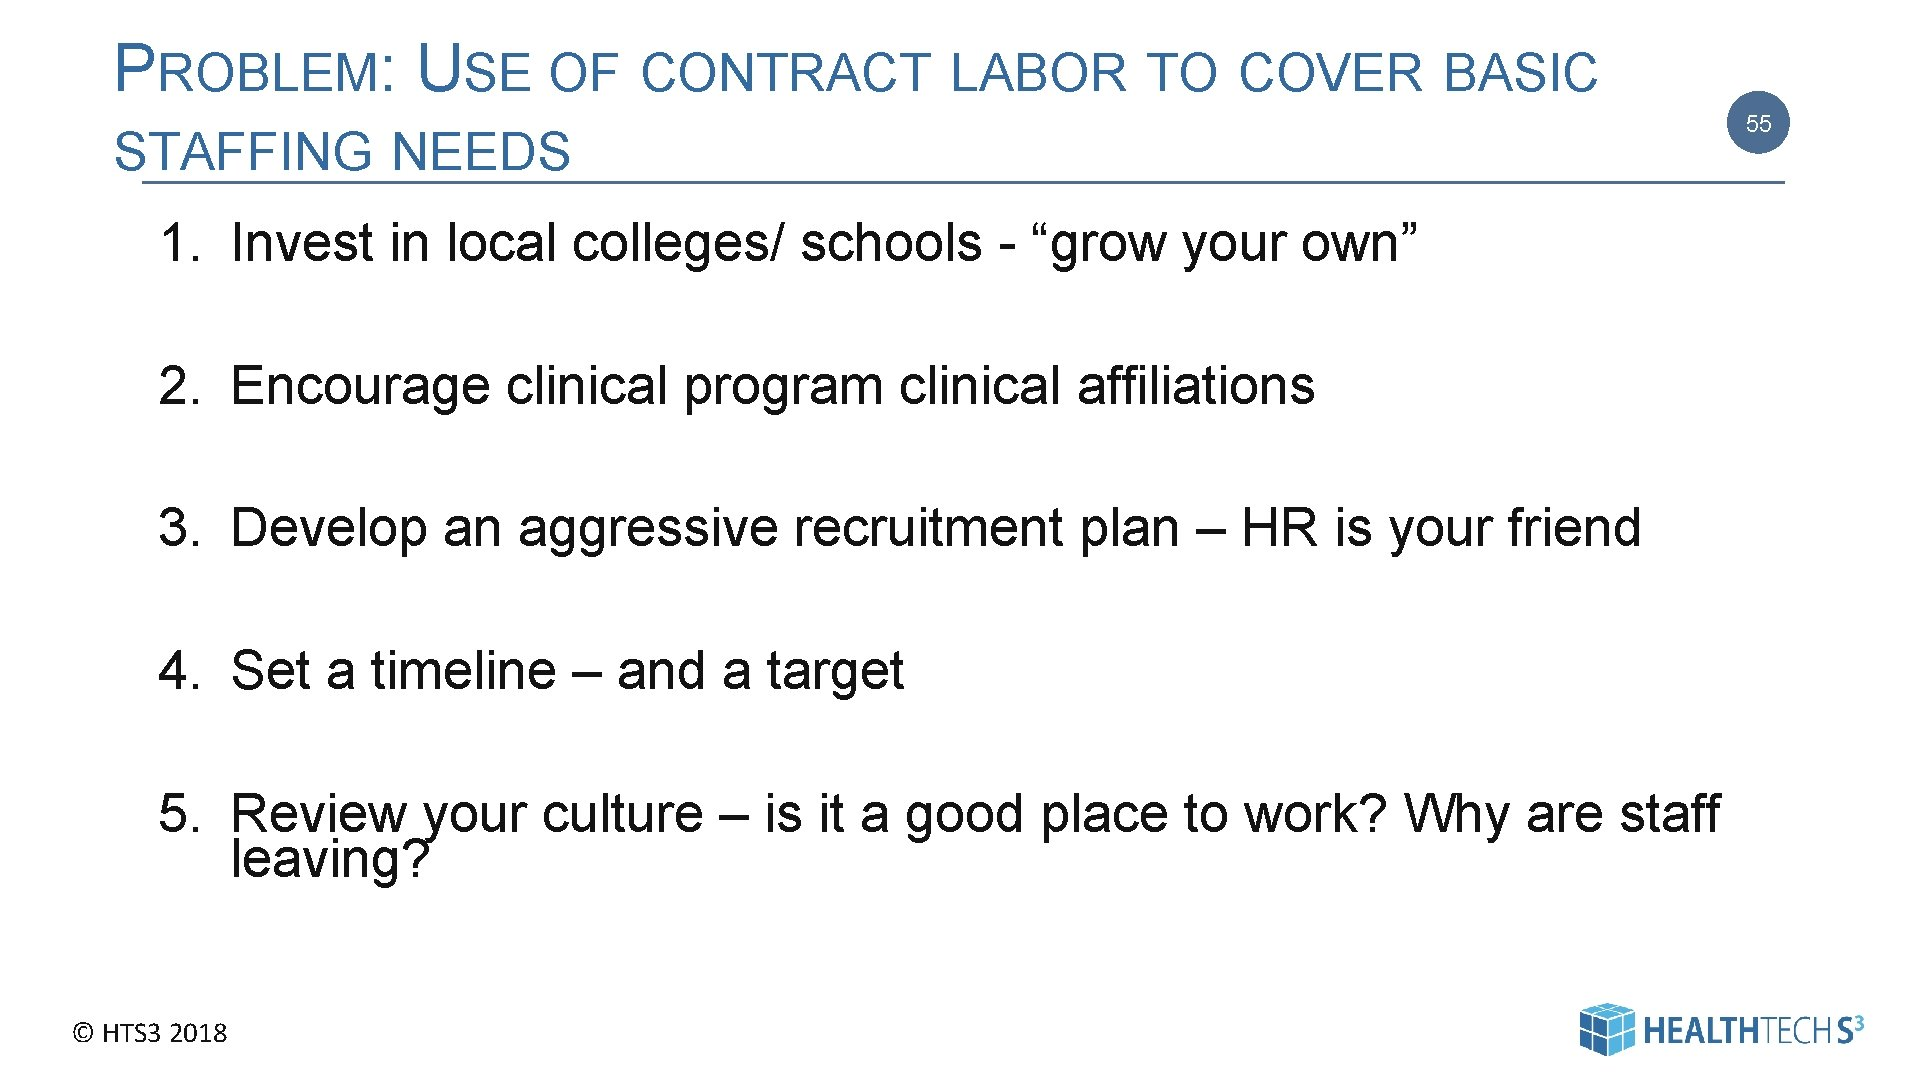 PROBLEM: USE OF CONTRACT LABOR TO COVER BASIC STAFFING NEEDS 1. Invest in local